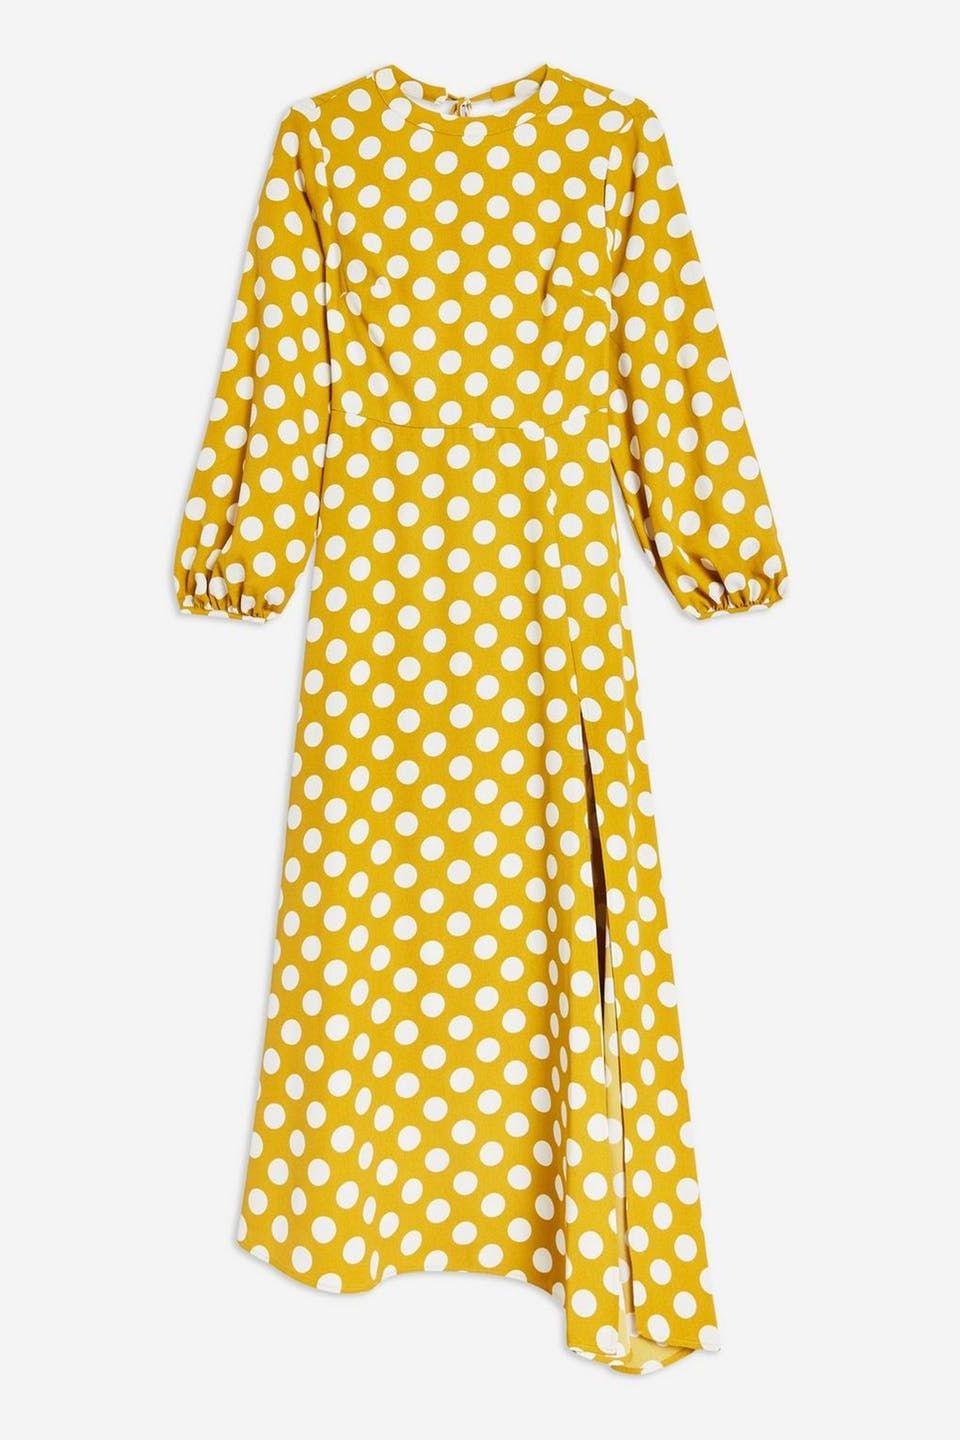 4d063f56 Yellow dress with dots from Top Shop | Skøn sommerkjole i gul - Costume.dk